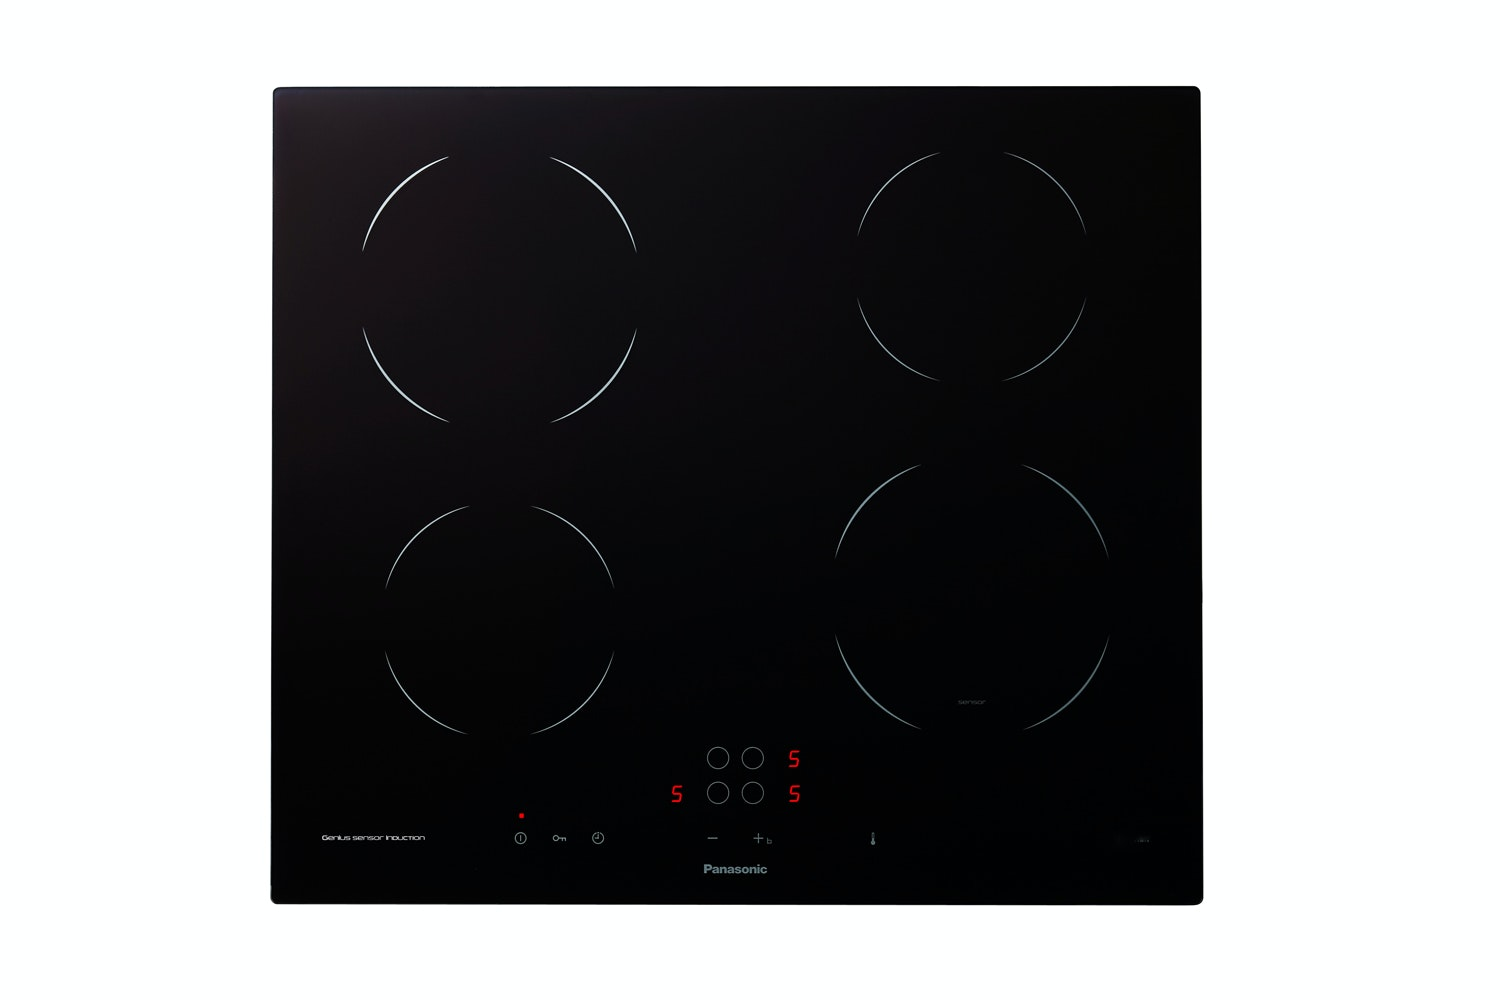 Panasonic 60cm Induction Cooktop